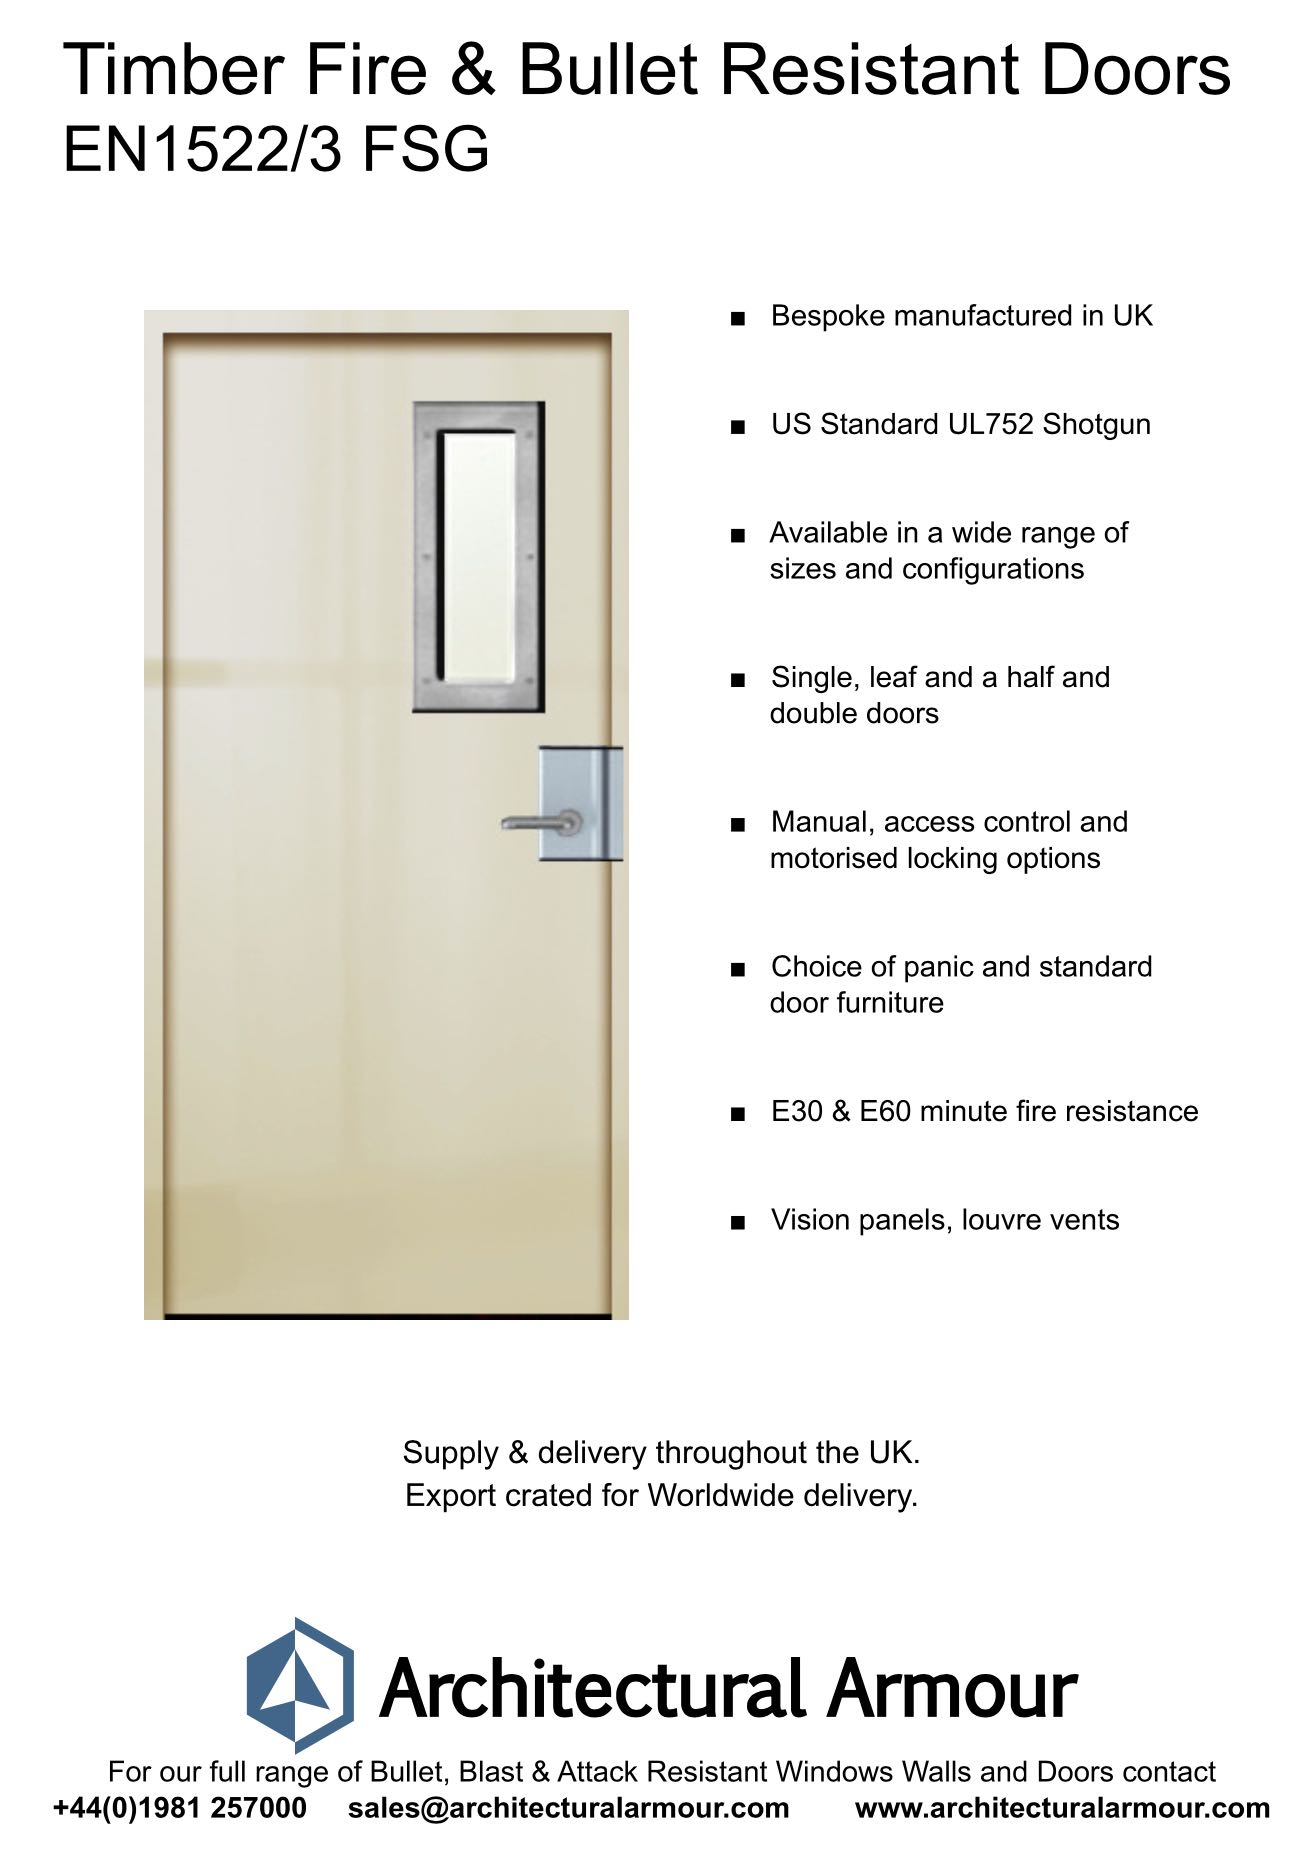 en1522/3 fsg timber fire and bullet resistant door